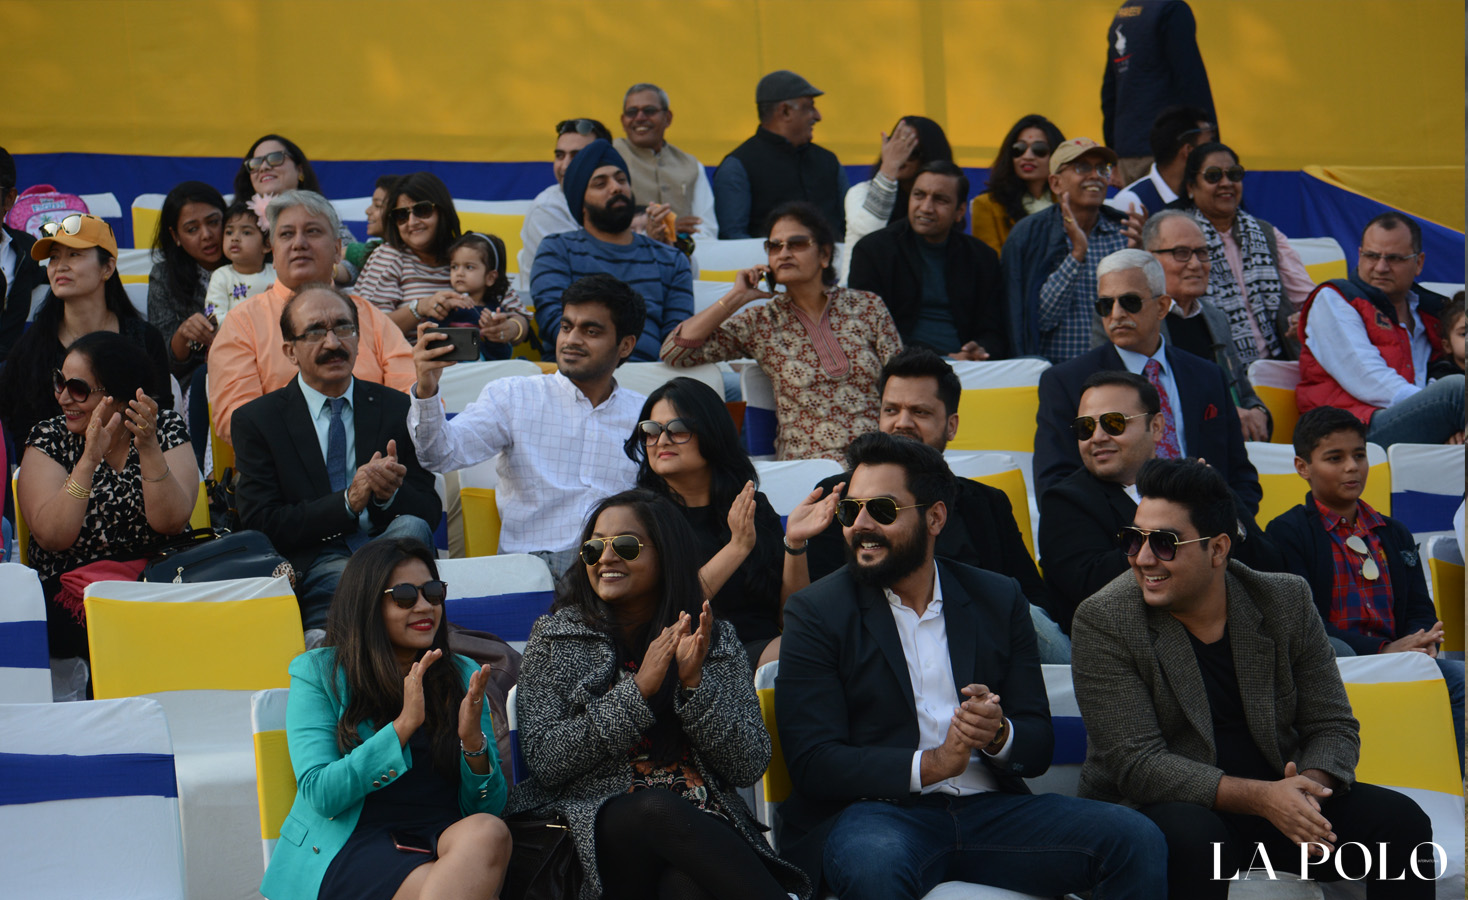 polo audience  at match